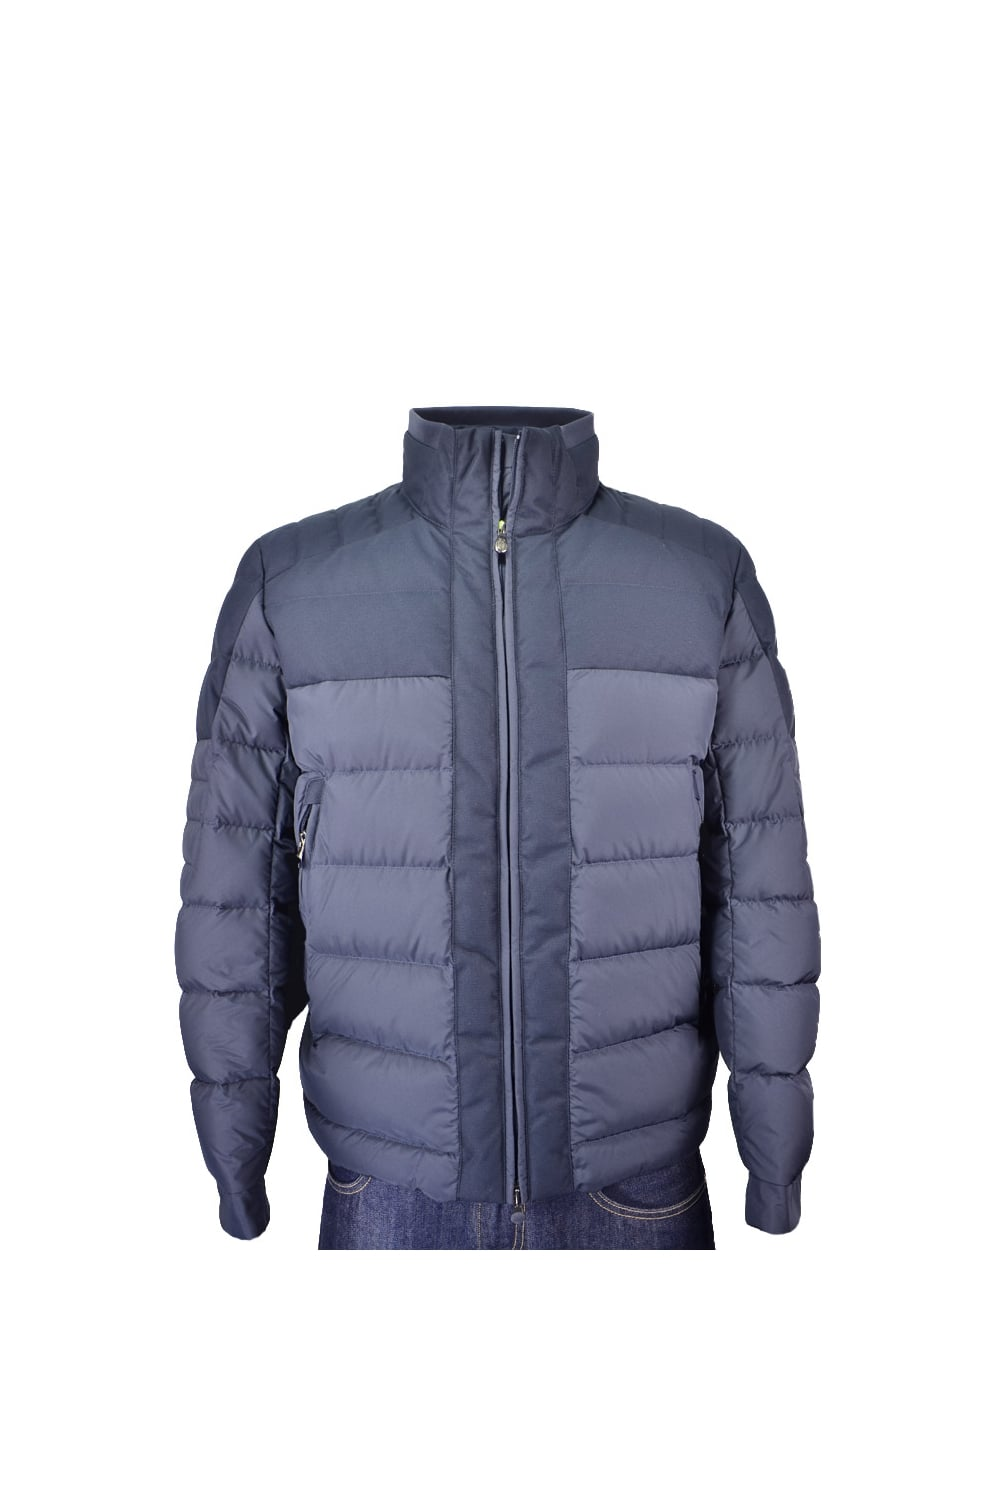 646632313d Hugo Boss Green Jonkins 3 Padded Jacket Navy - Clothing from Michael ...